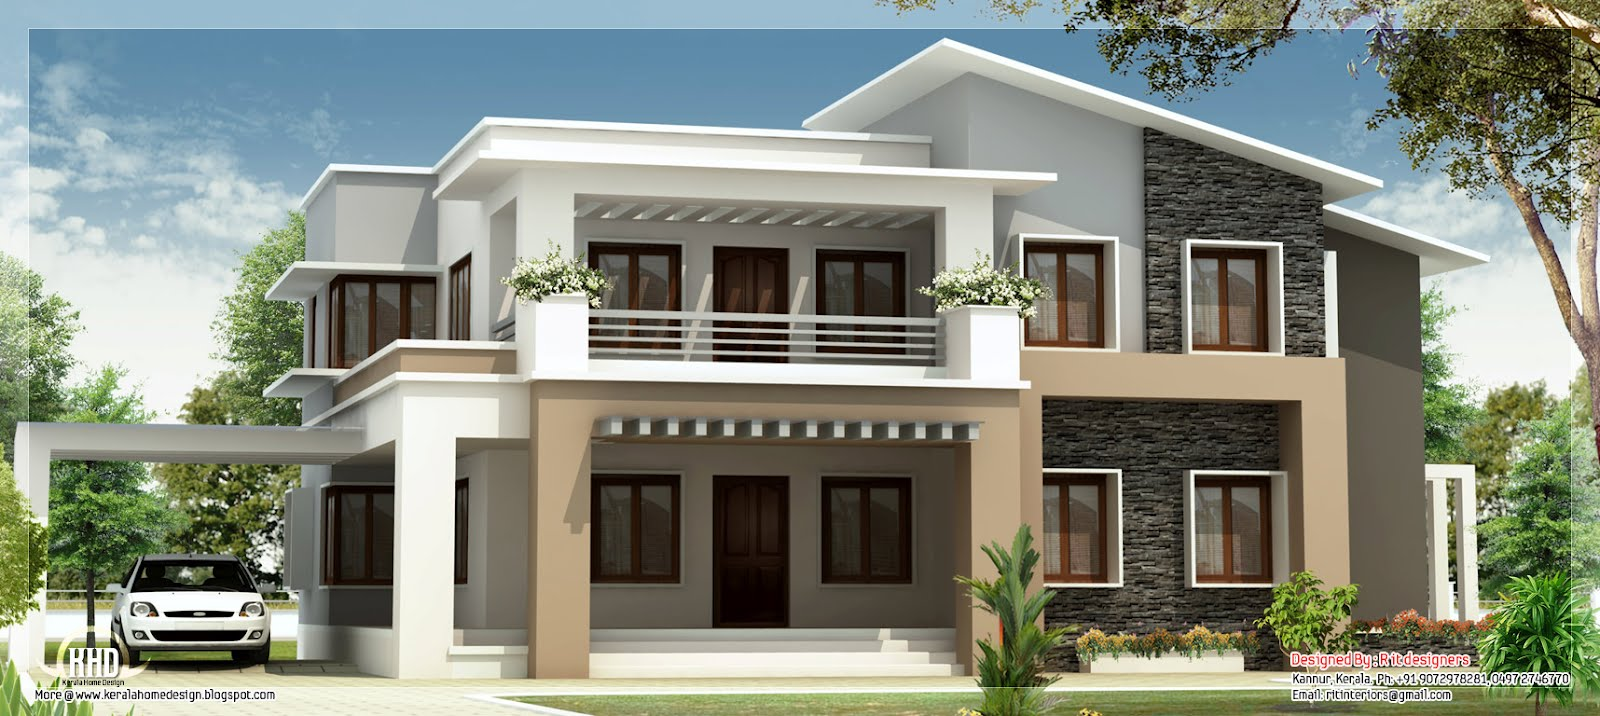 Modern mix double floor home design kerala home design for First floor house plans in india